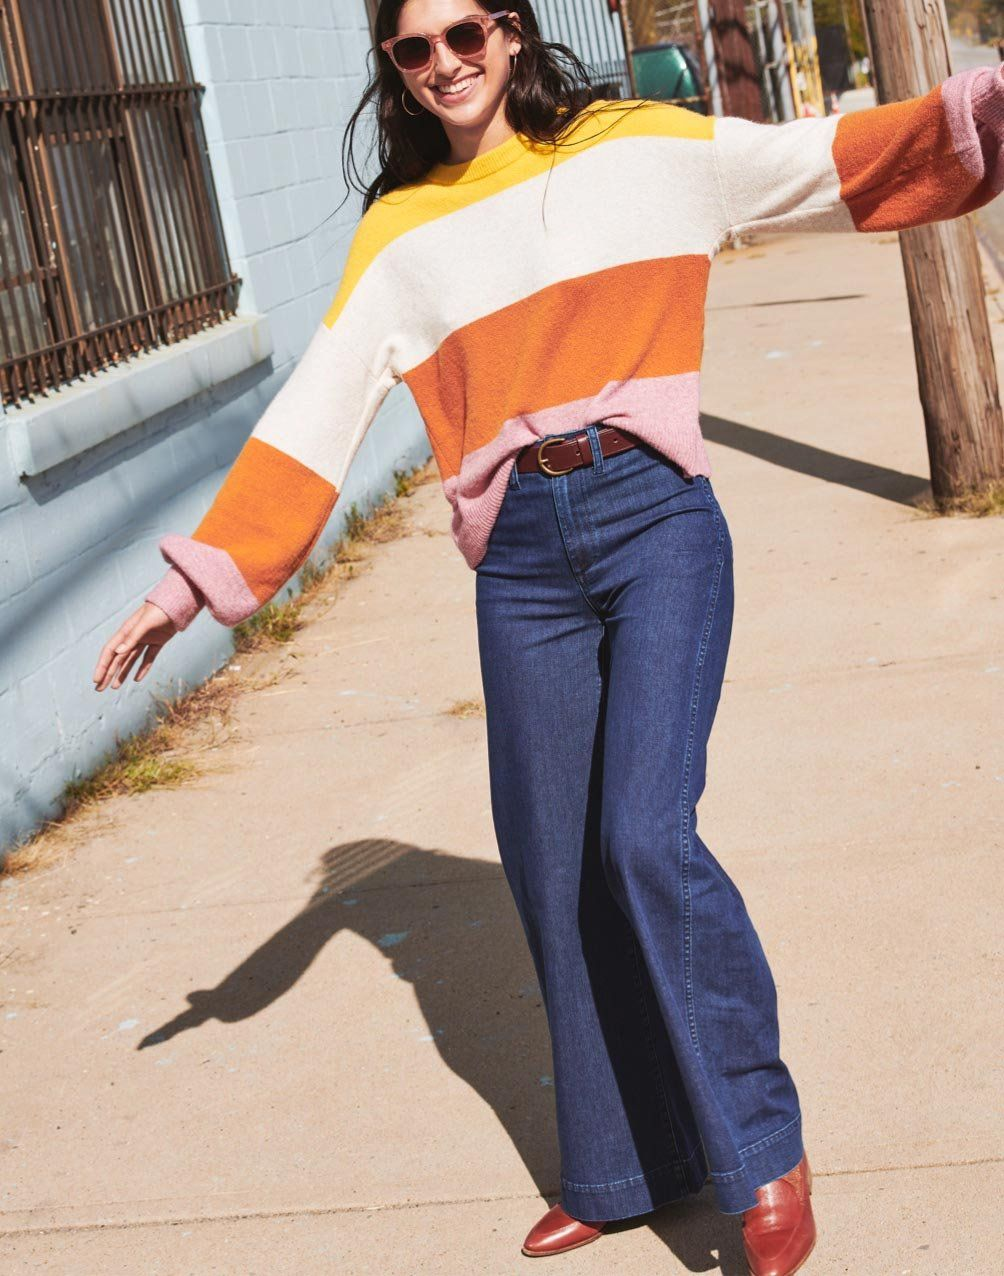 bab6827ecf madewell emmett wide-leg jeans worn with striped gladwell pullover sweater